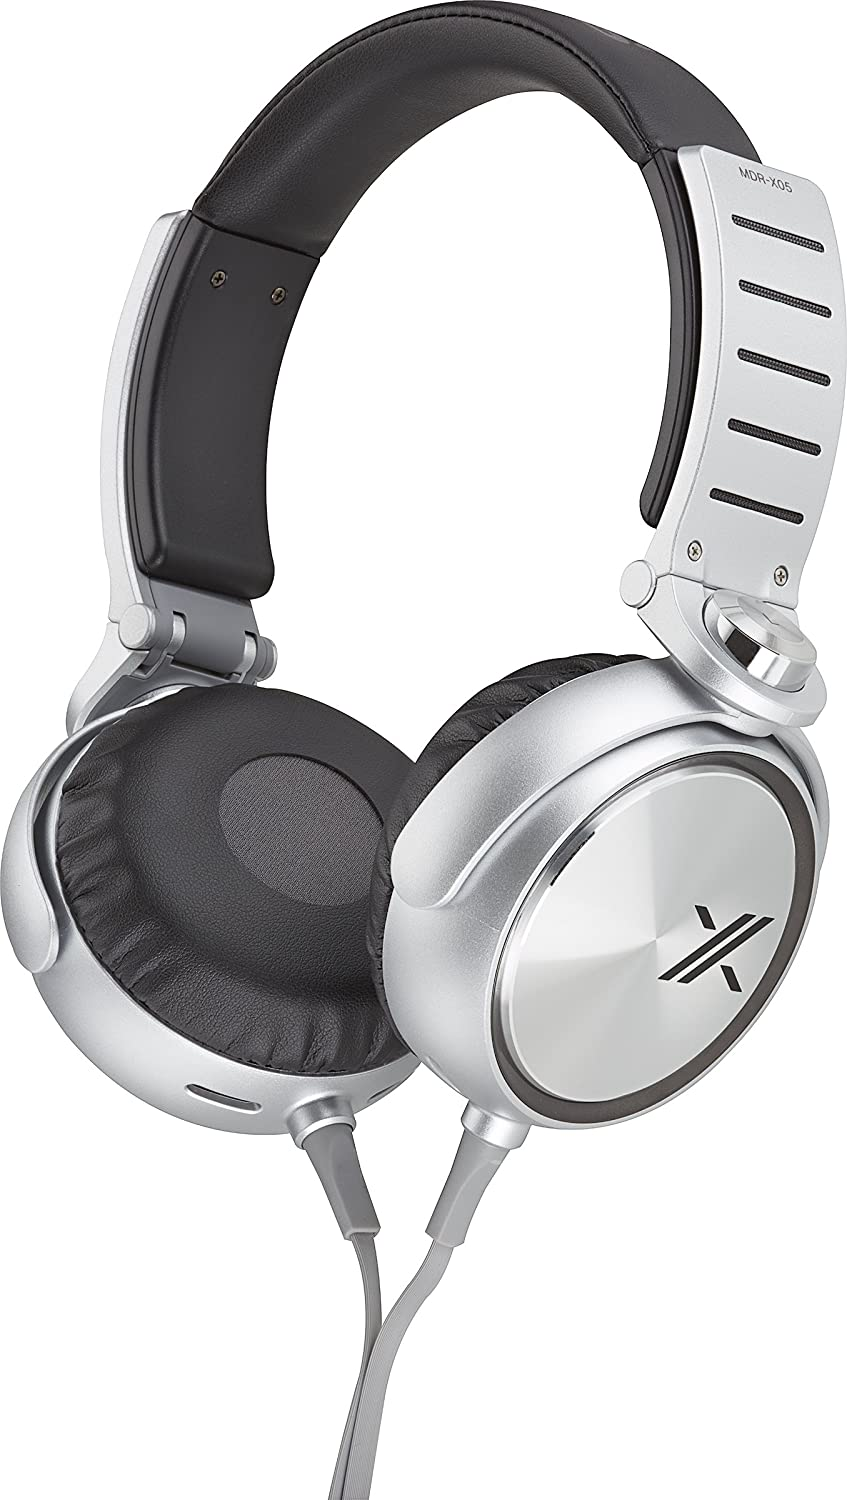 Sony MDRX05 BS Simon Cowell X Headphone Black Silver